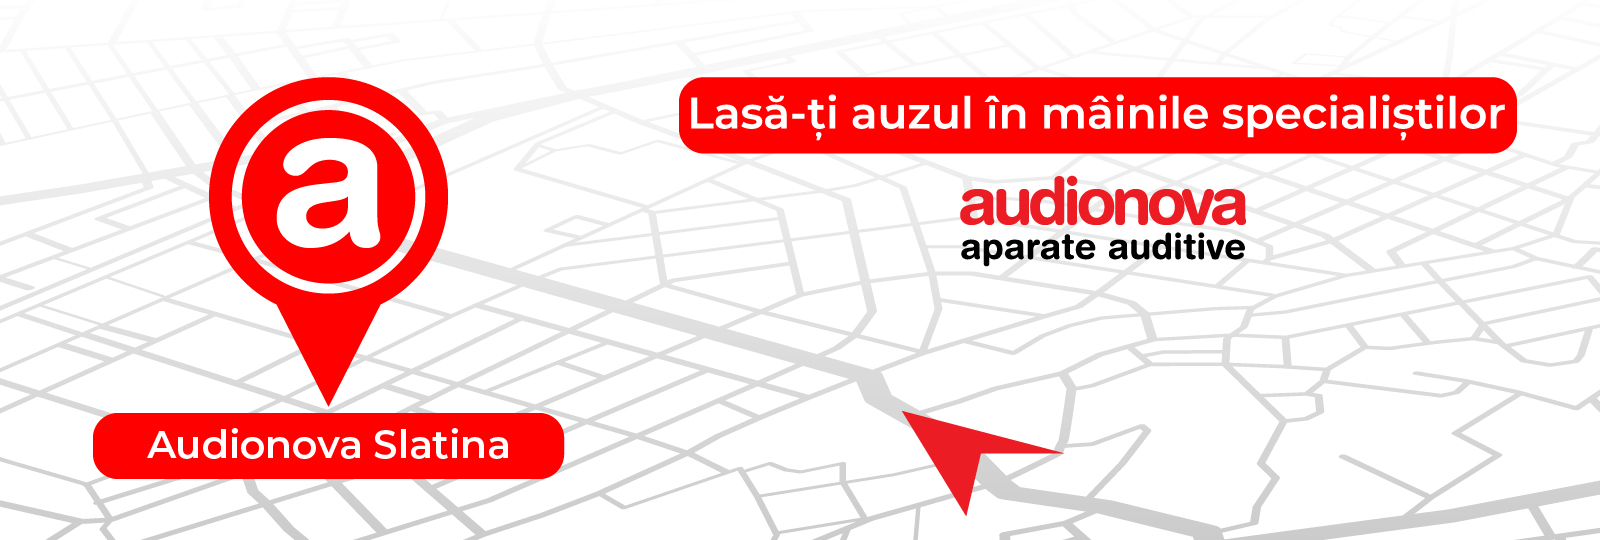 aparate auditive slatina